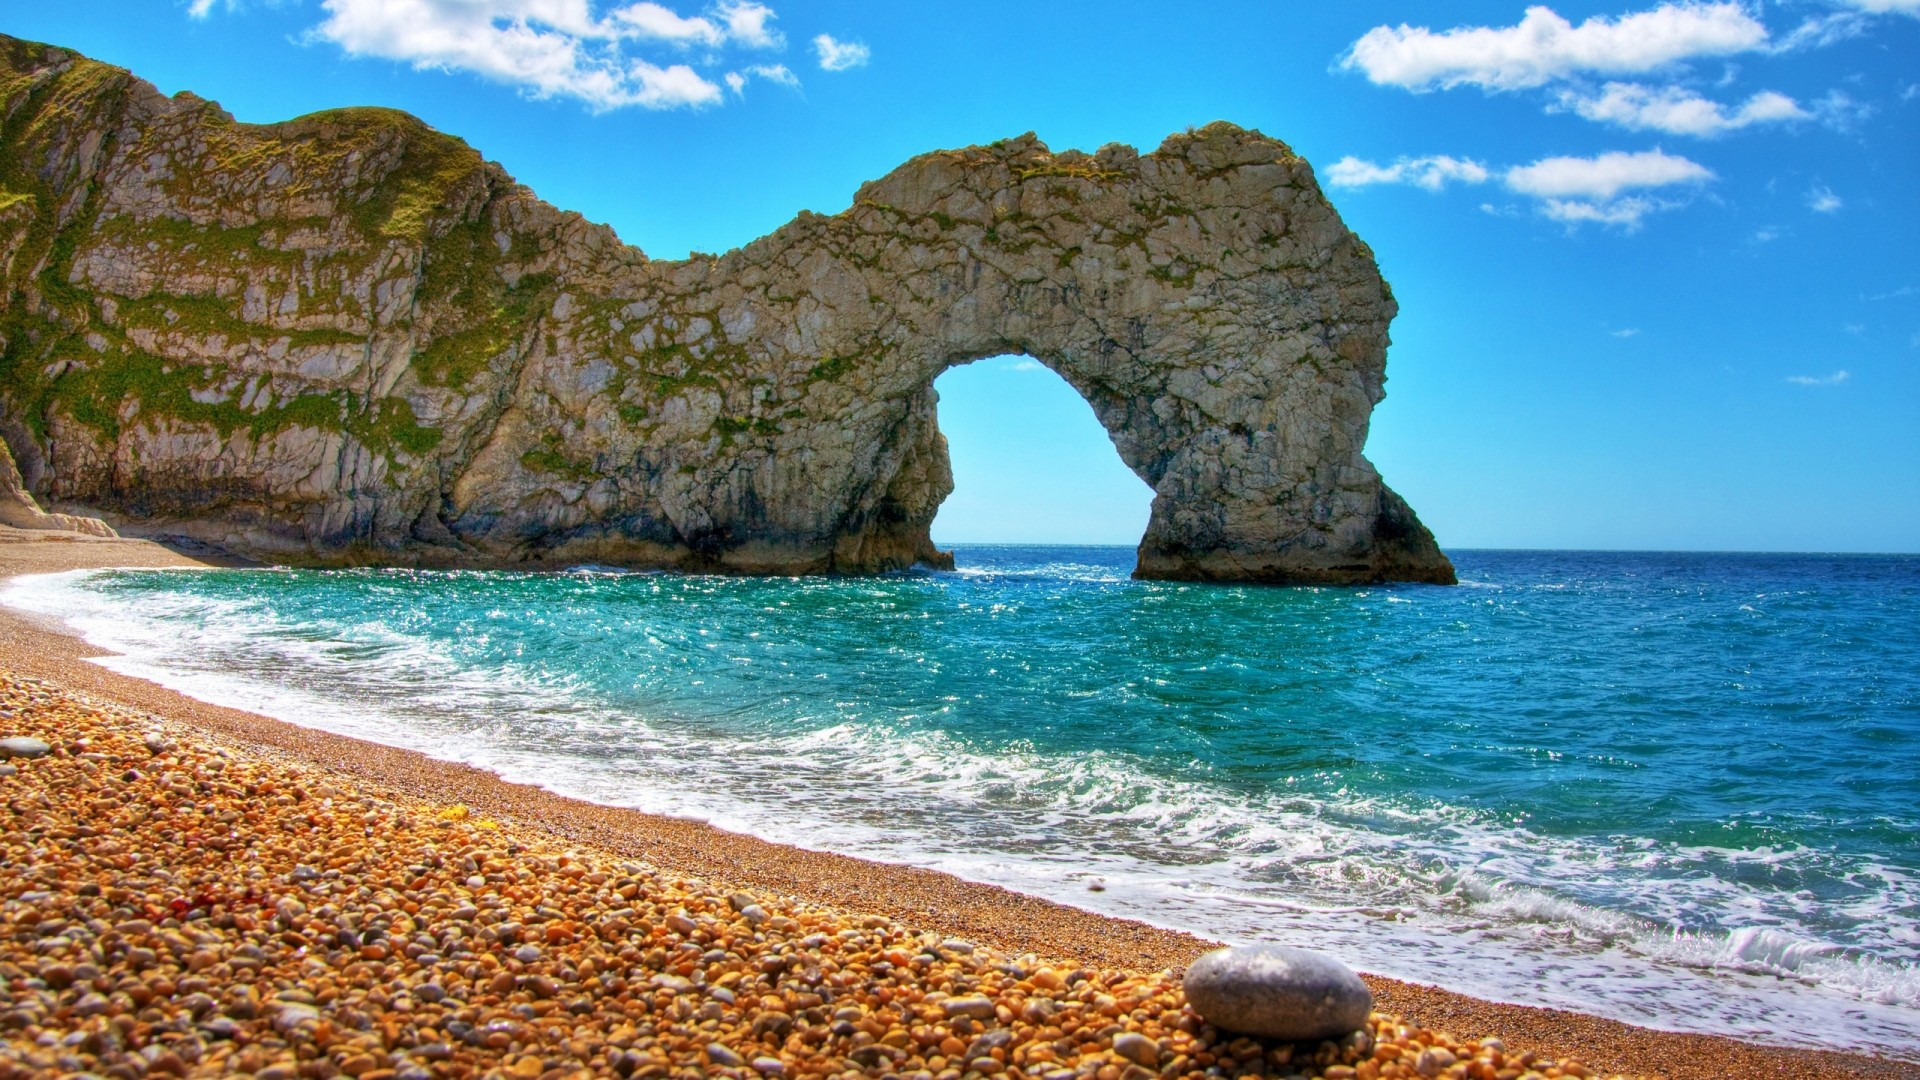 Spain Durdle Door sea wallpaper 1920x1080 61685 WallpaperUP 1920x1080